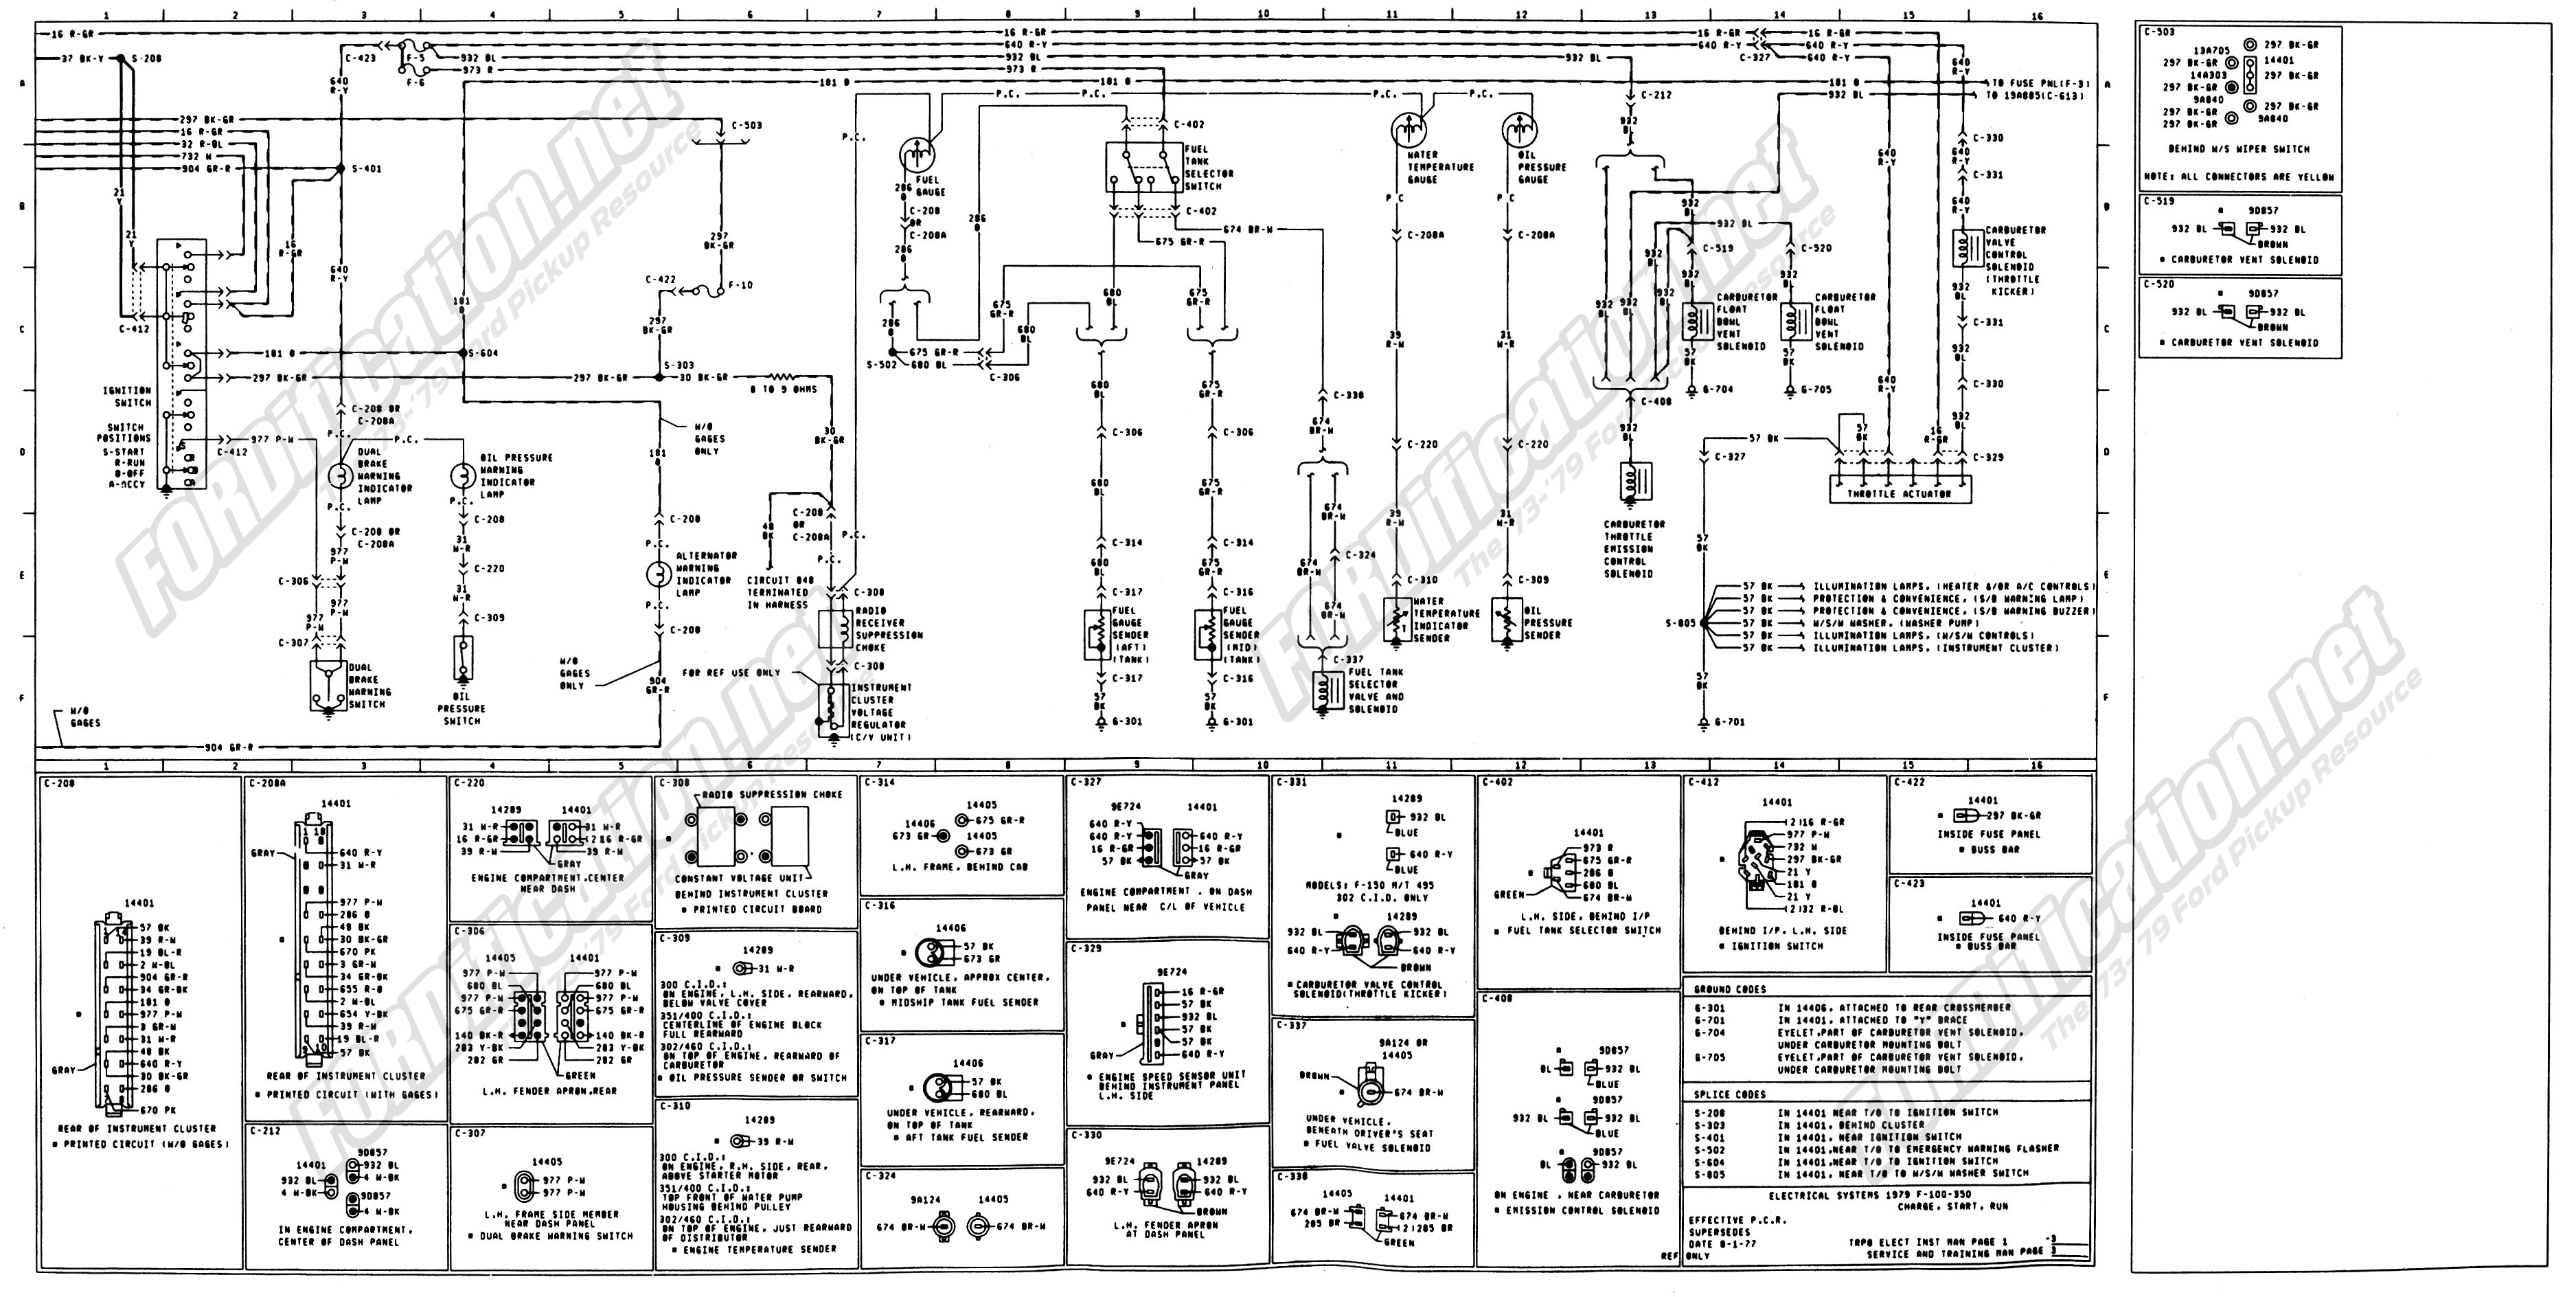 1973 1979 ford truck wiring diagrams schematics fordification net rh fordification net 1969 Ford F-250 Highboy 4x4 1979 Ford F-250